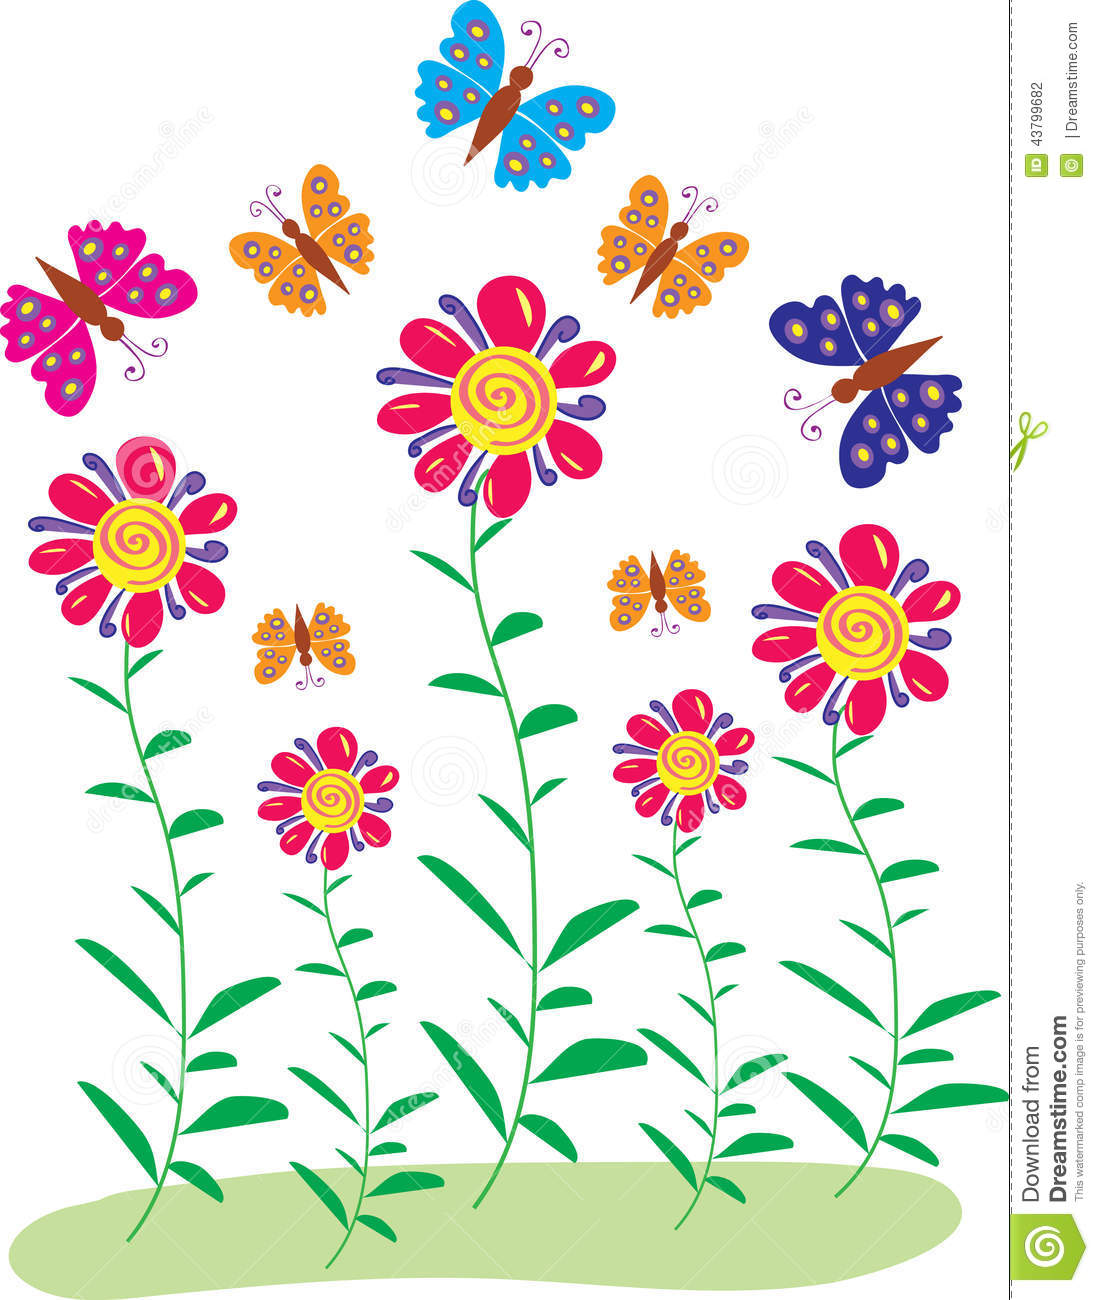 Toriko Surrounded By Bugs Jpg: Butterflies And Flowers Stock Vector. Illustration Of